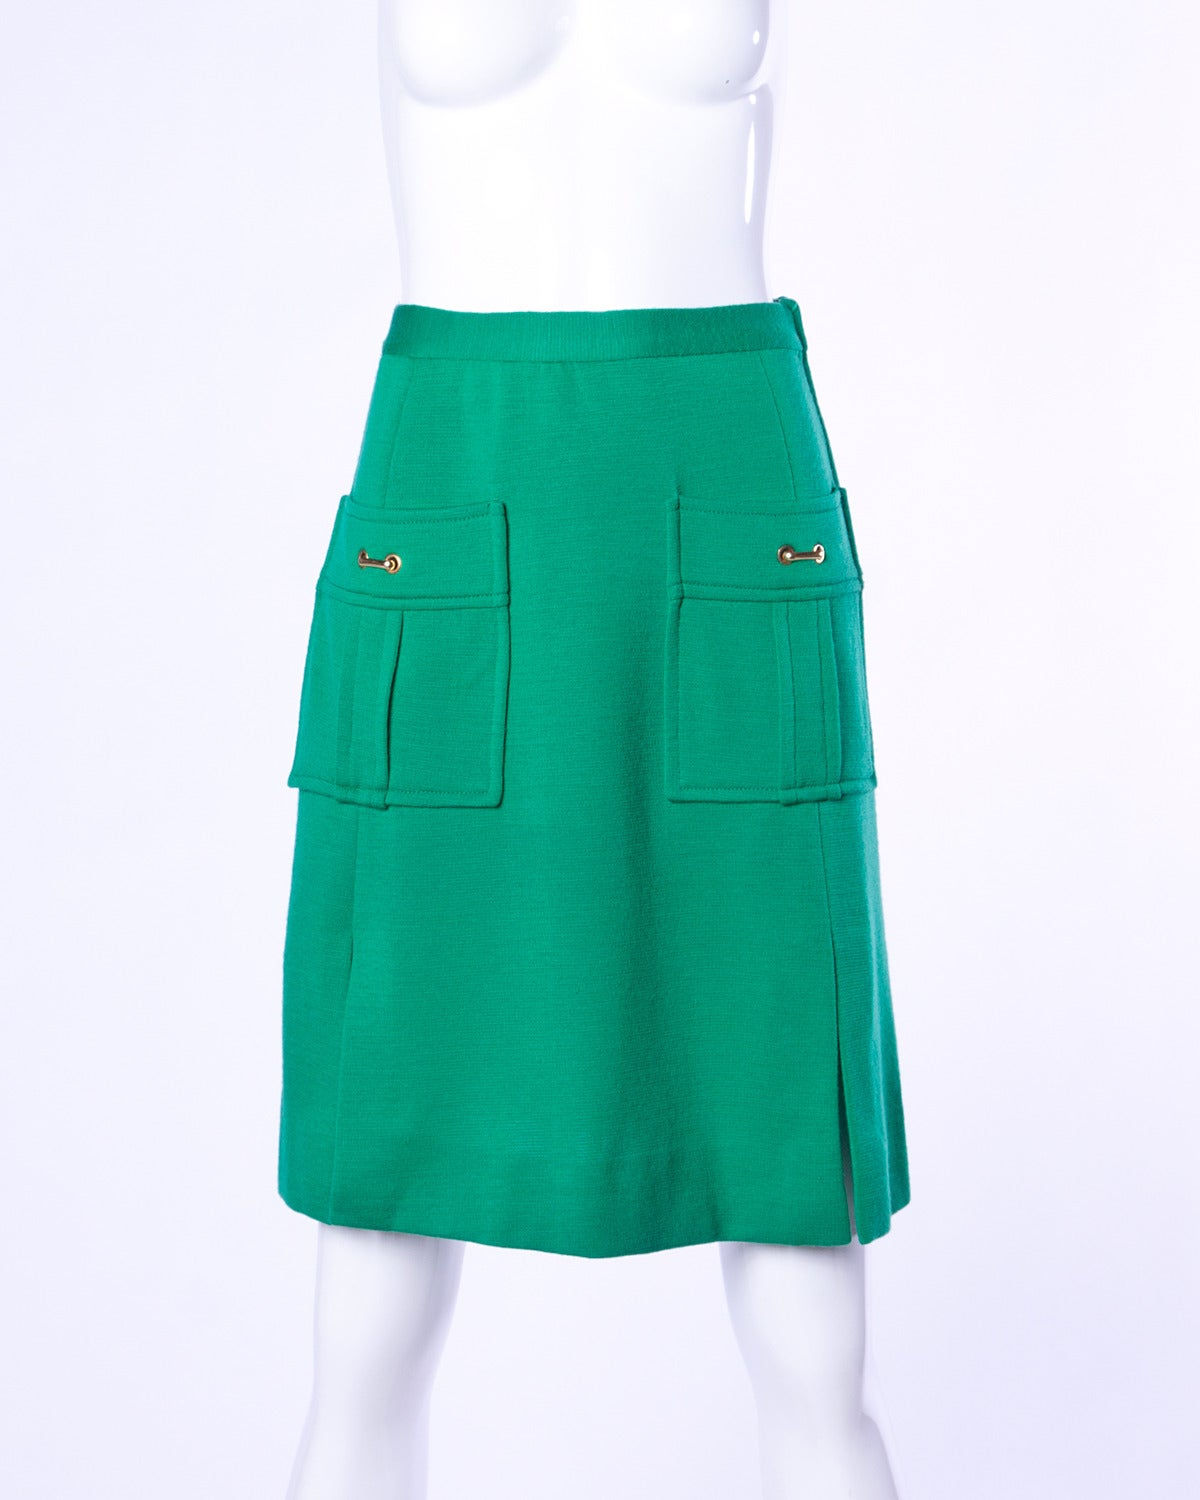 Vintage 1960s 60s Italian Wool Kelly Green Knit Skirt + Top 2-Piece Ensemble 2